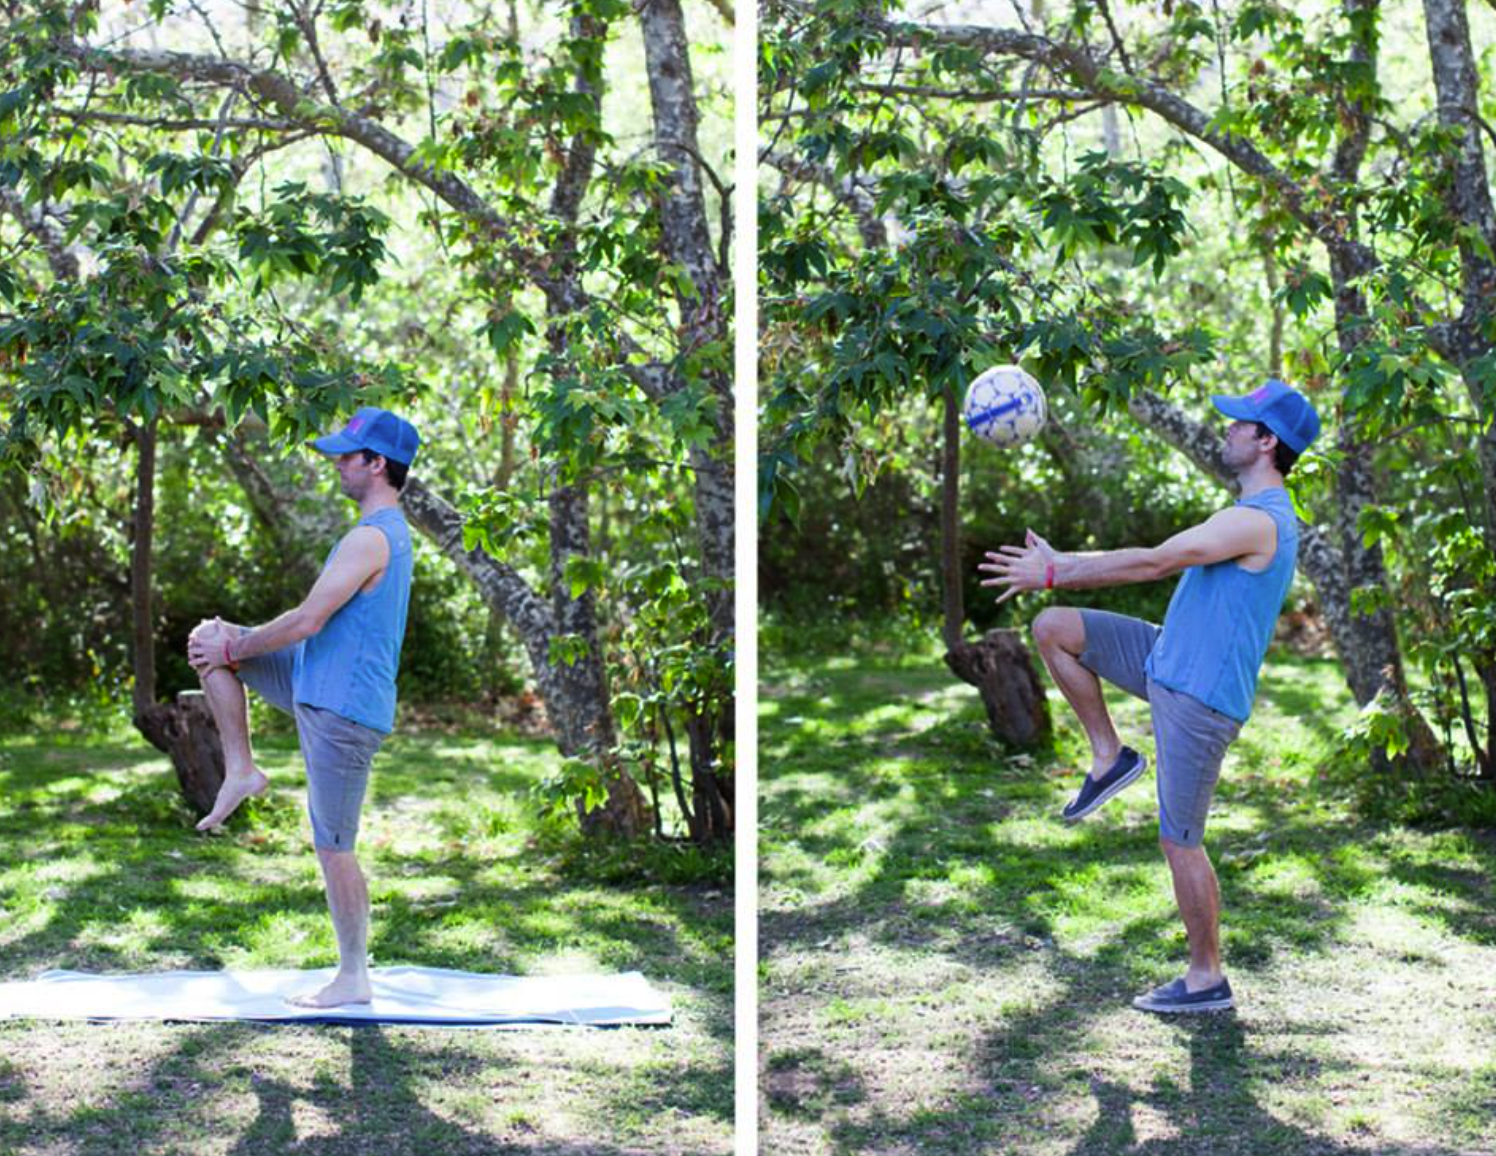 On your way to this knee extension, there's time for a pick up game.